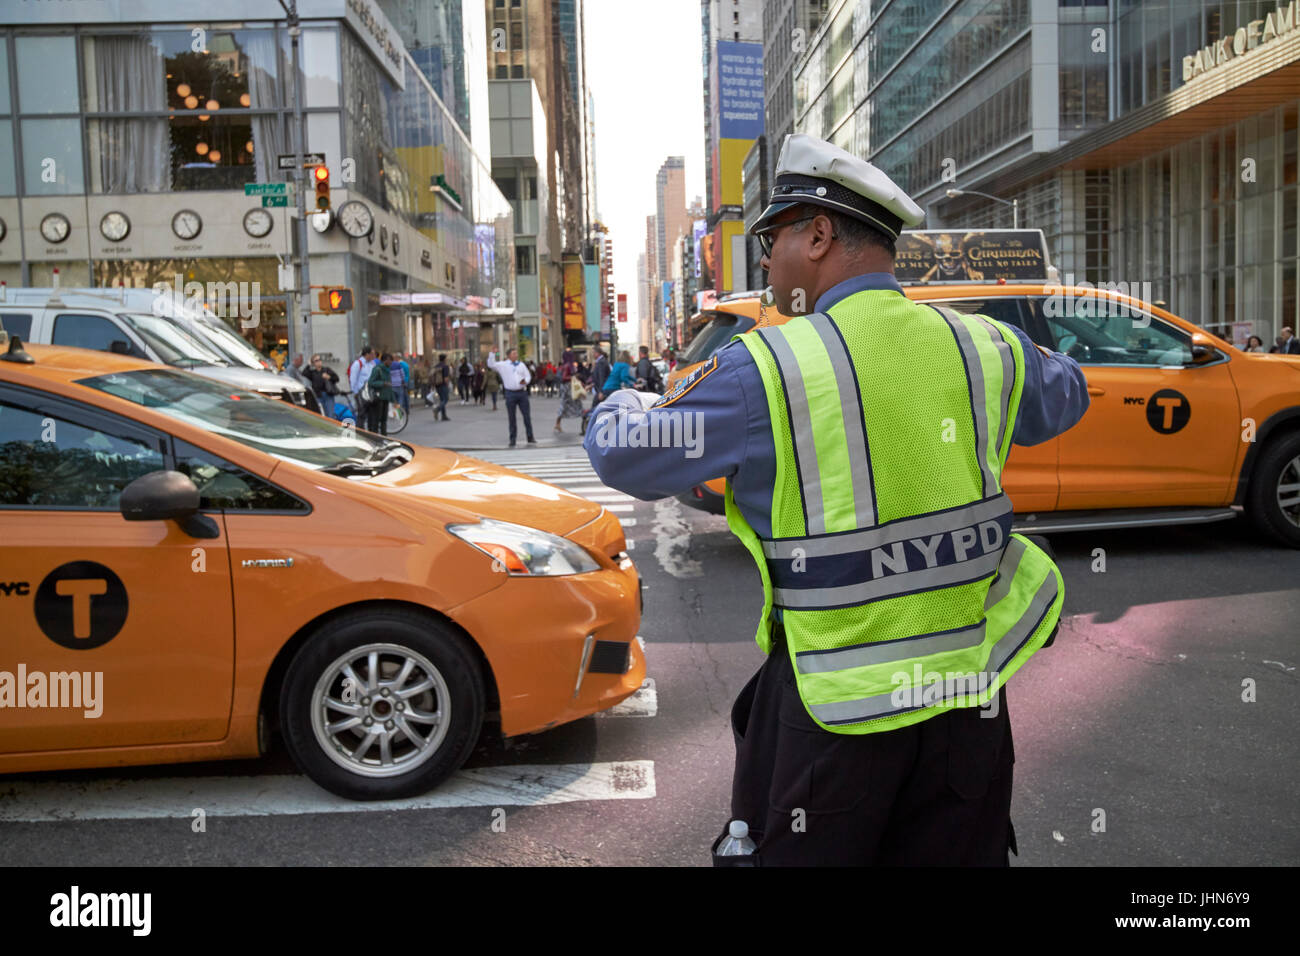 nypd traffic officer with whistle in mouth directing traffic on 6th ave New York City USA - Stock Image